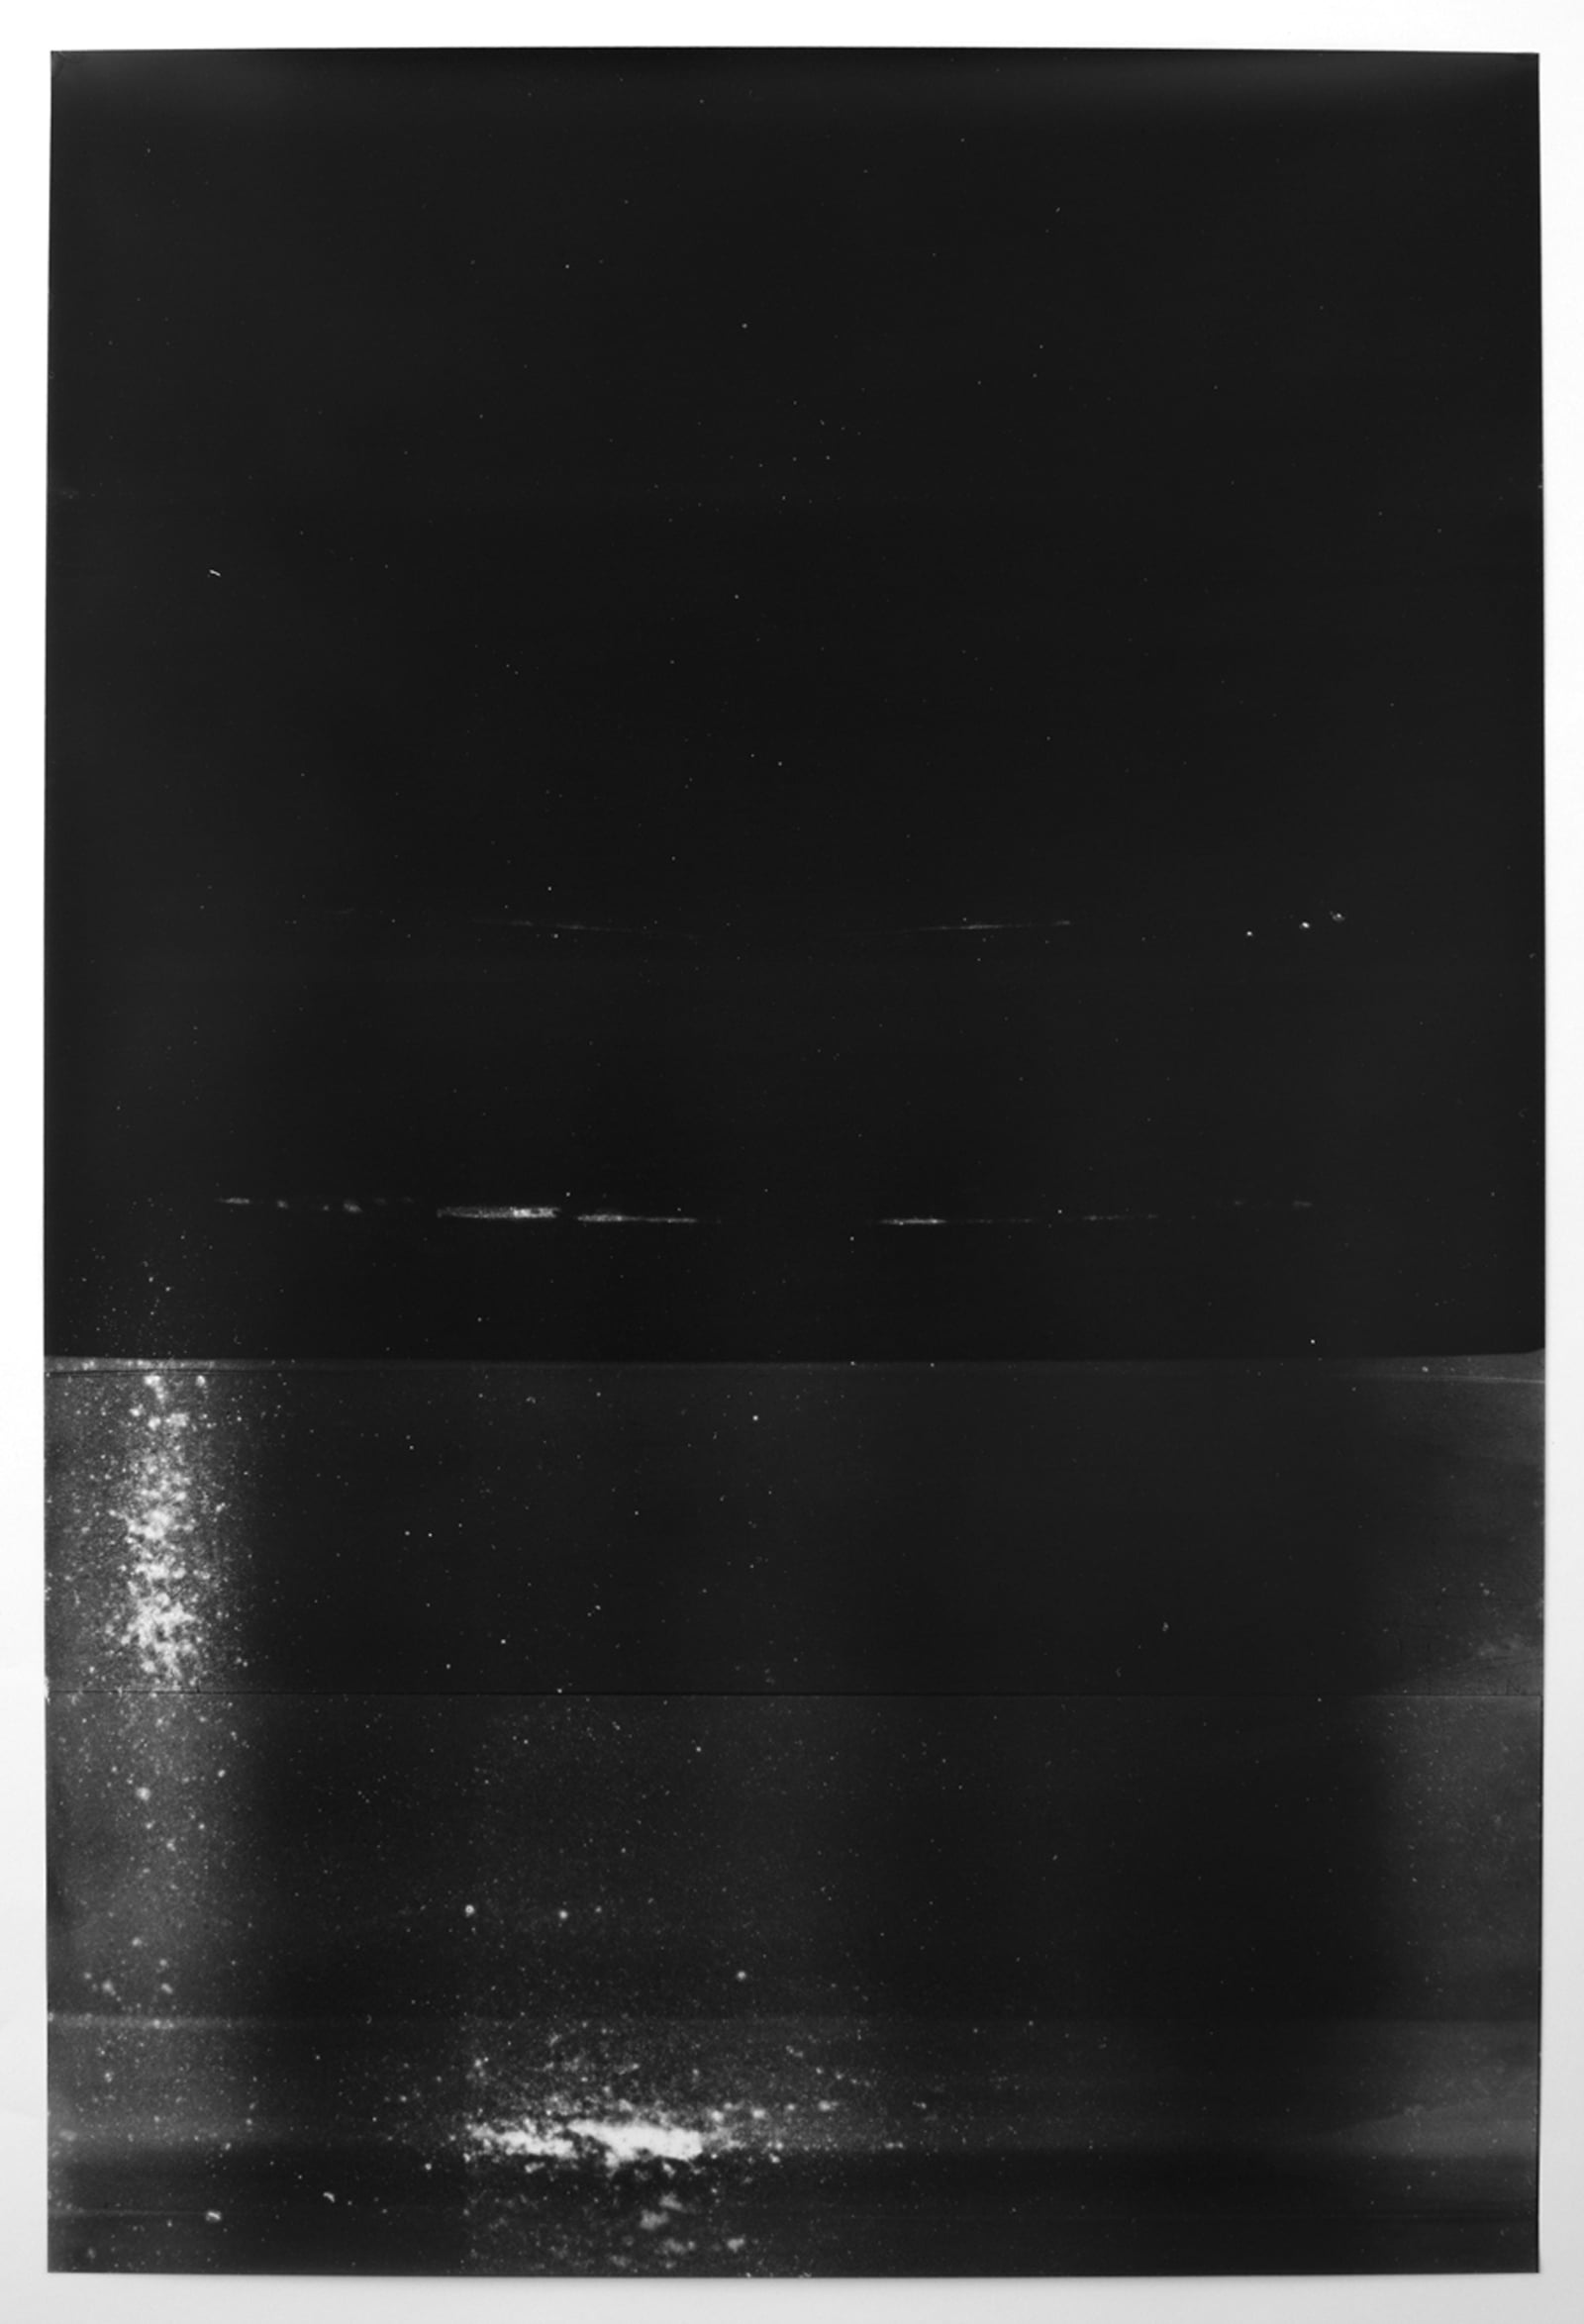 Untitled (black, from the series reflected/repeated - light becomes form, the horizon rests into view)  2015.  Oil based ink painted on frosted mylar.  24 x 35 inches unframed.